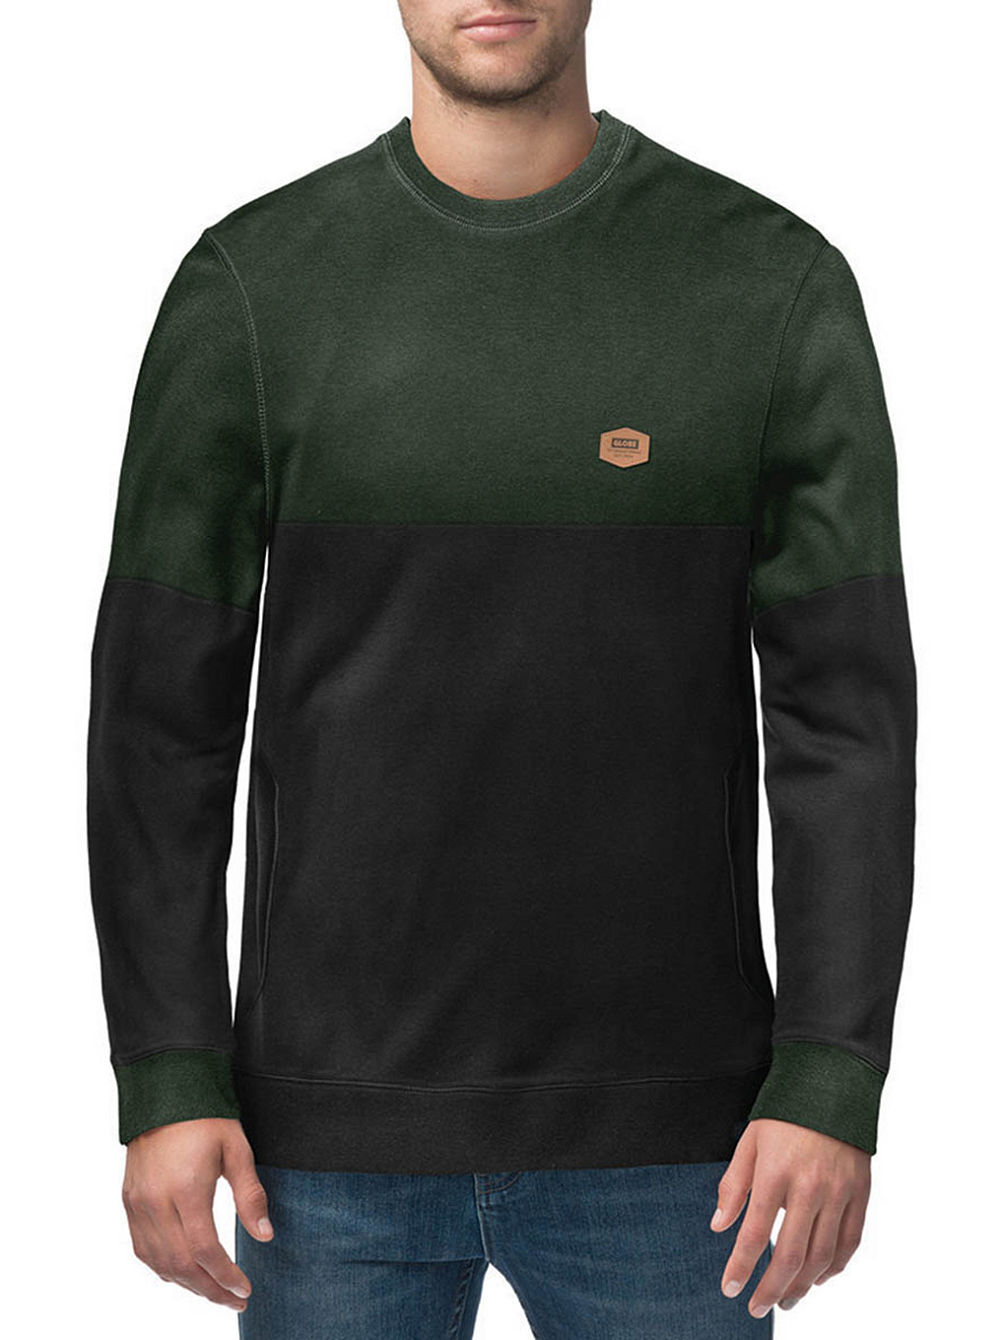 Covert Crew Sweater